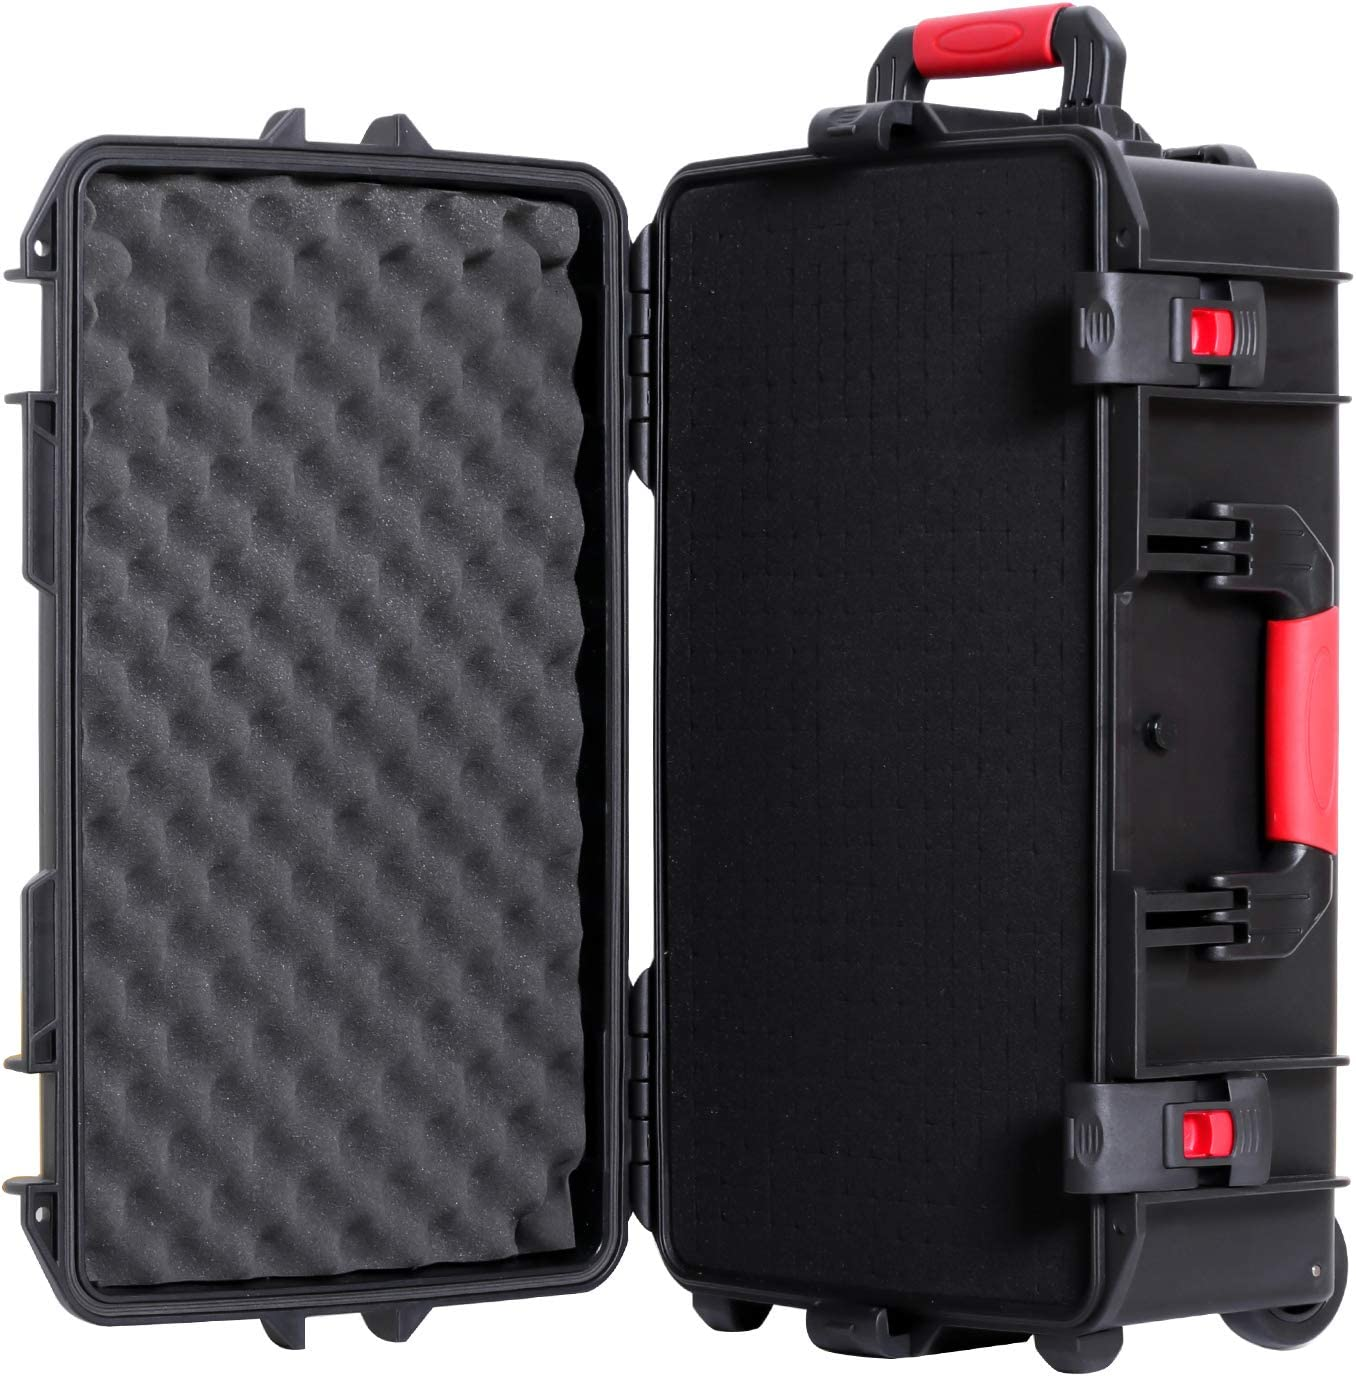 More 86001 TANKSTORM Waterproof Carry-On Hard Case with Wheels and Customizable Foam for Camera